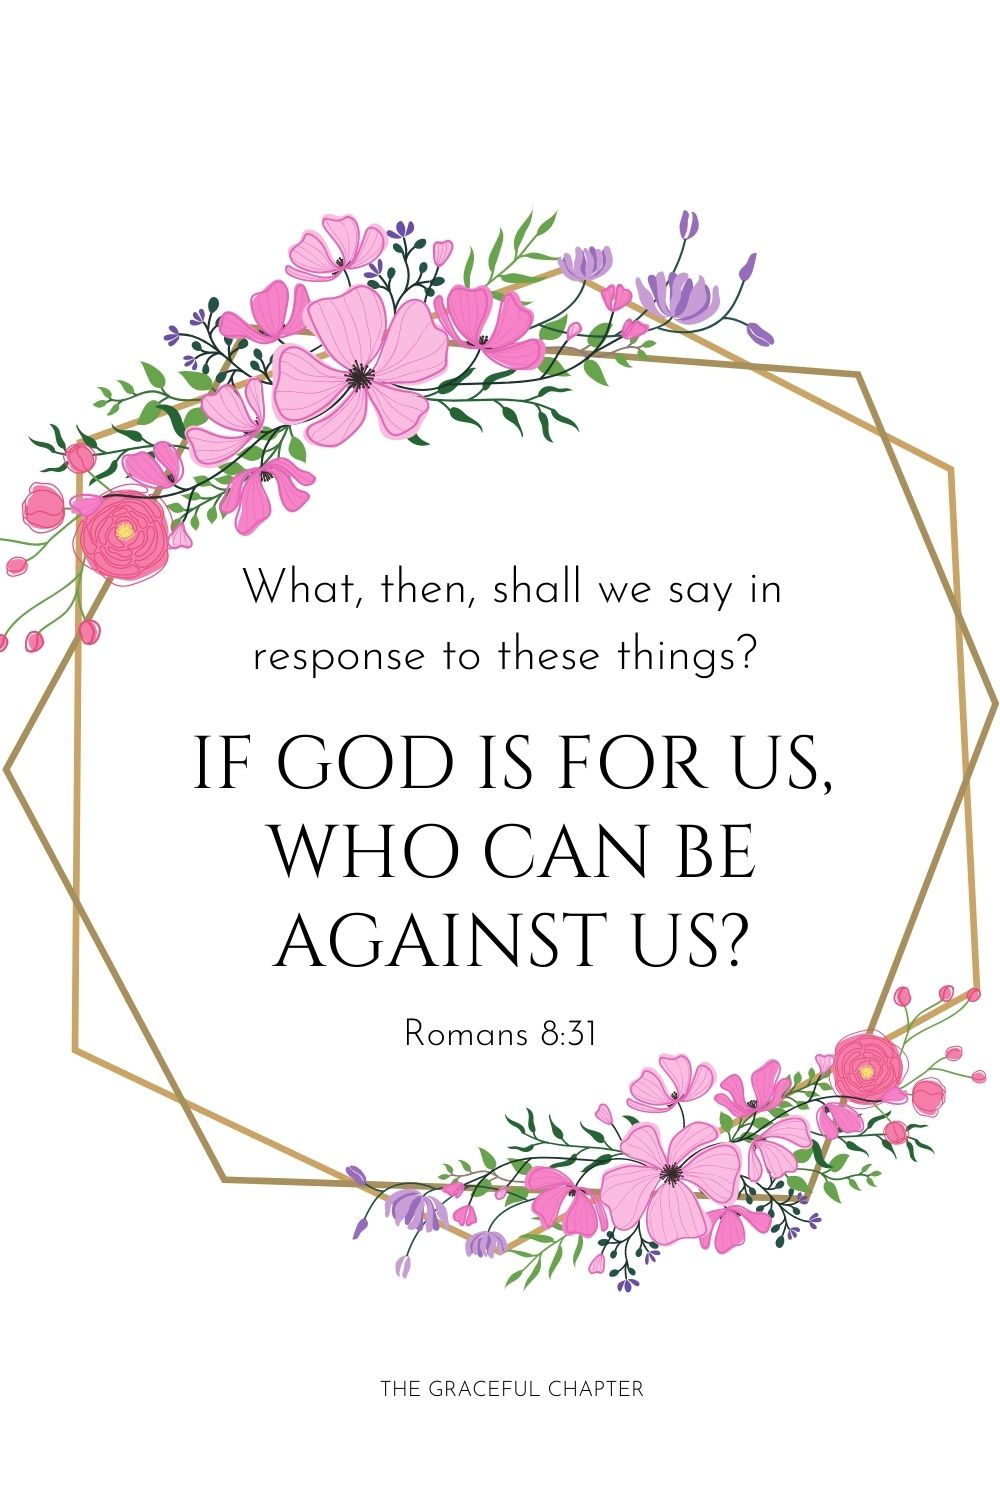 What, then, shall we say in response to these things? If God is for us,who can be against us? Romans 8:31